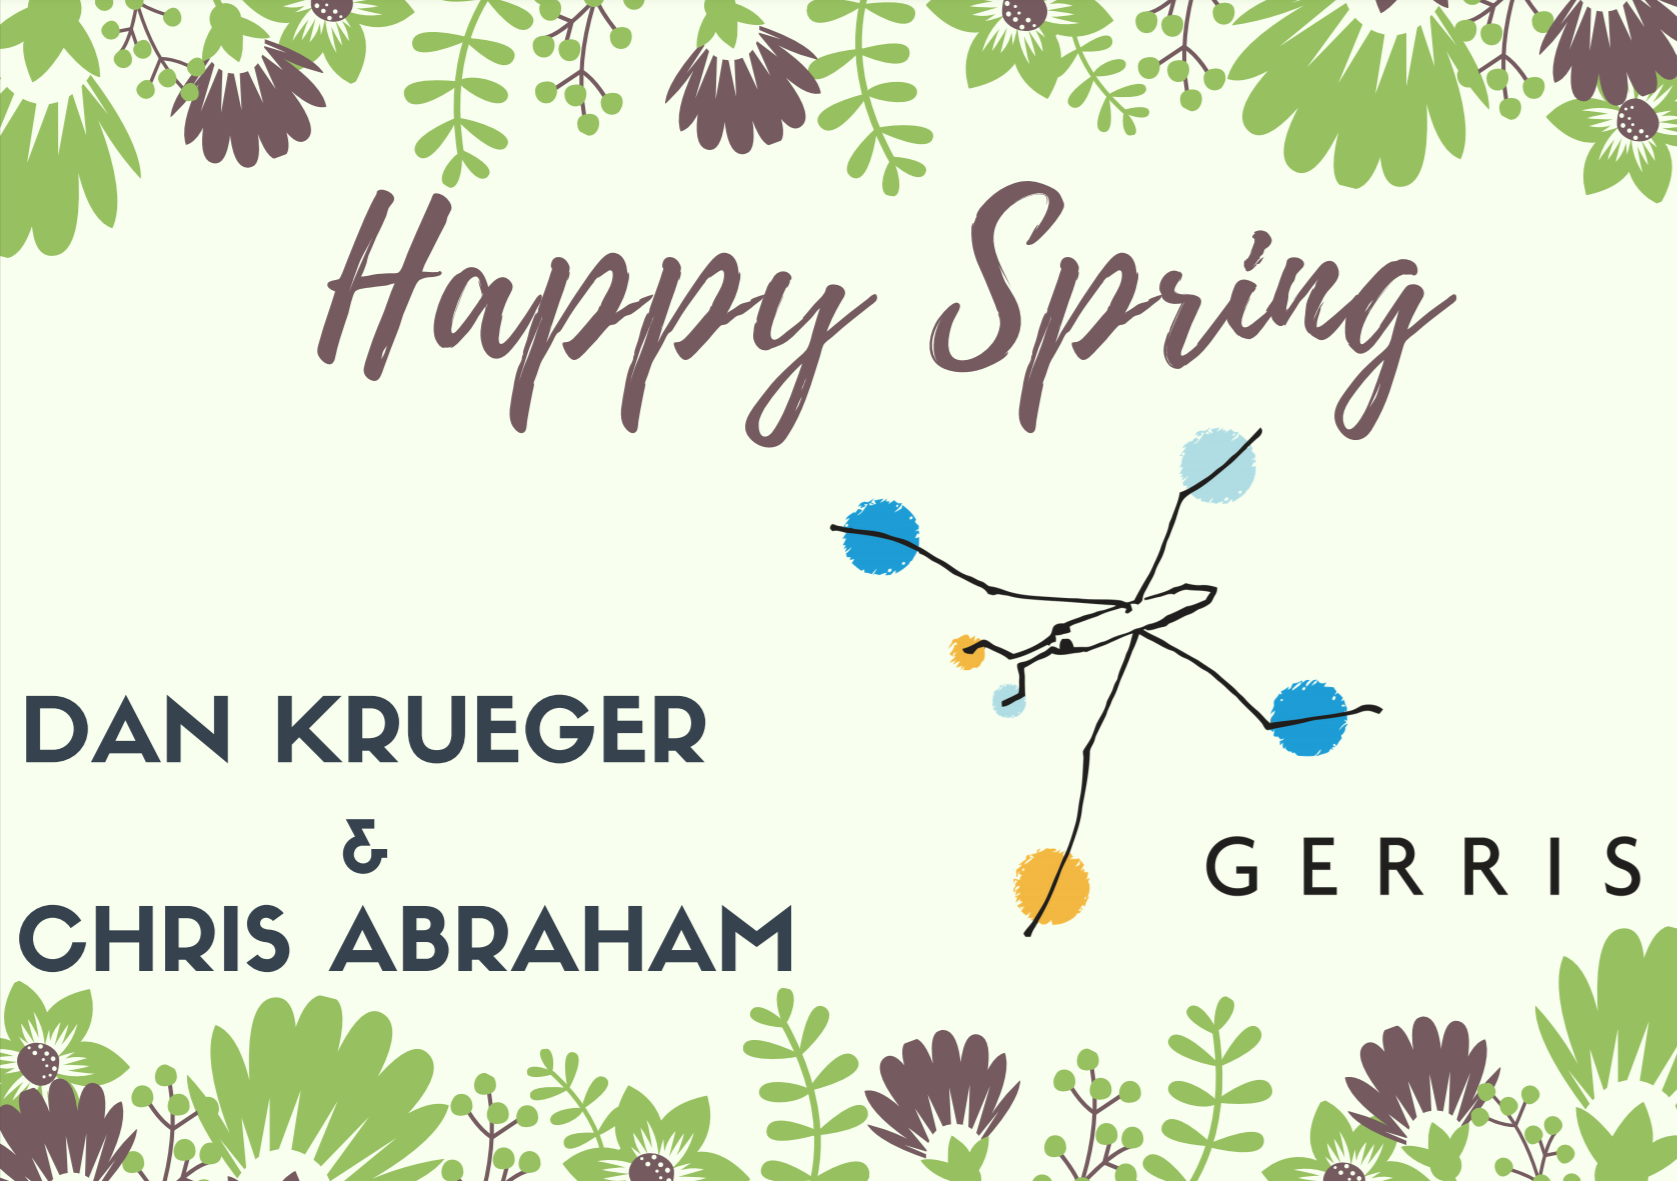 Happy Spring to you from Dan and Chris at Gerris!